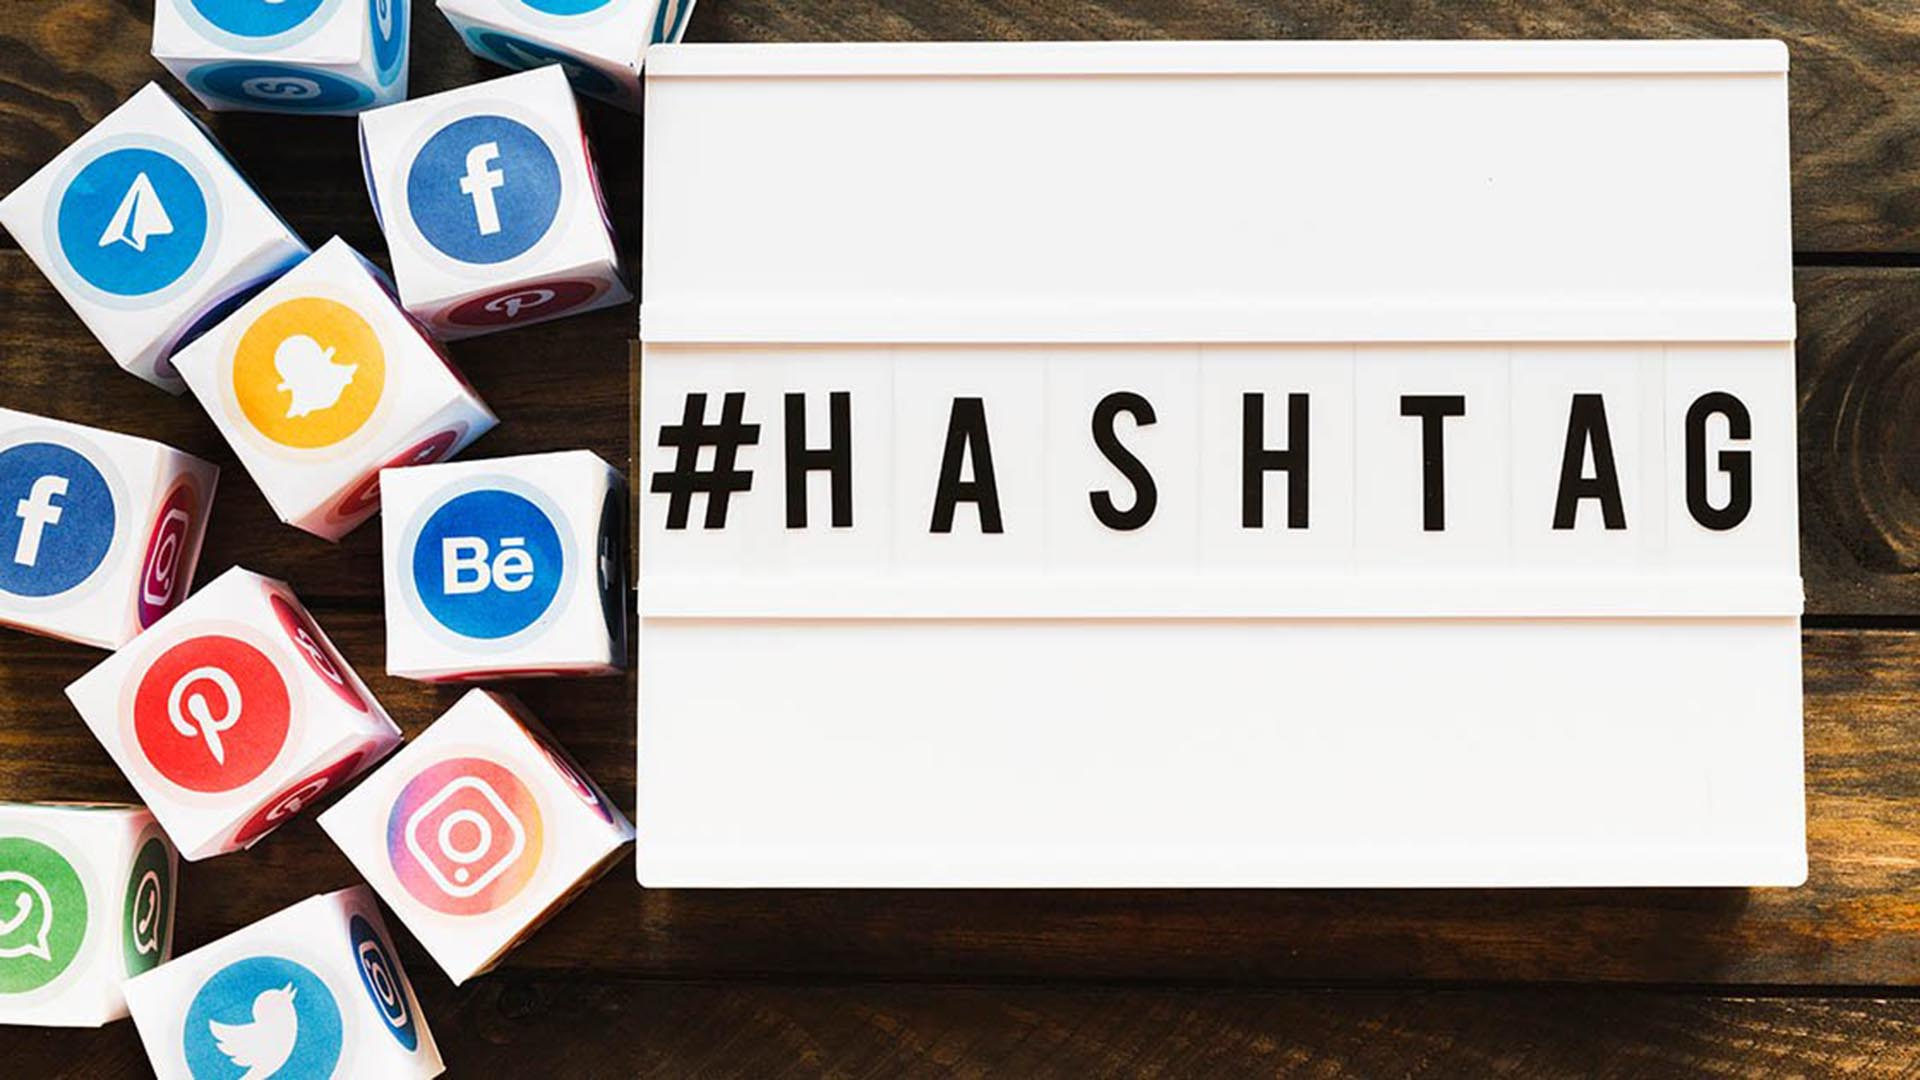 How to make hashtags accessible